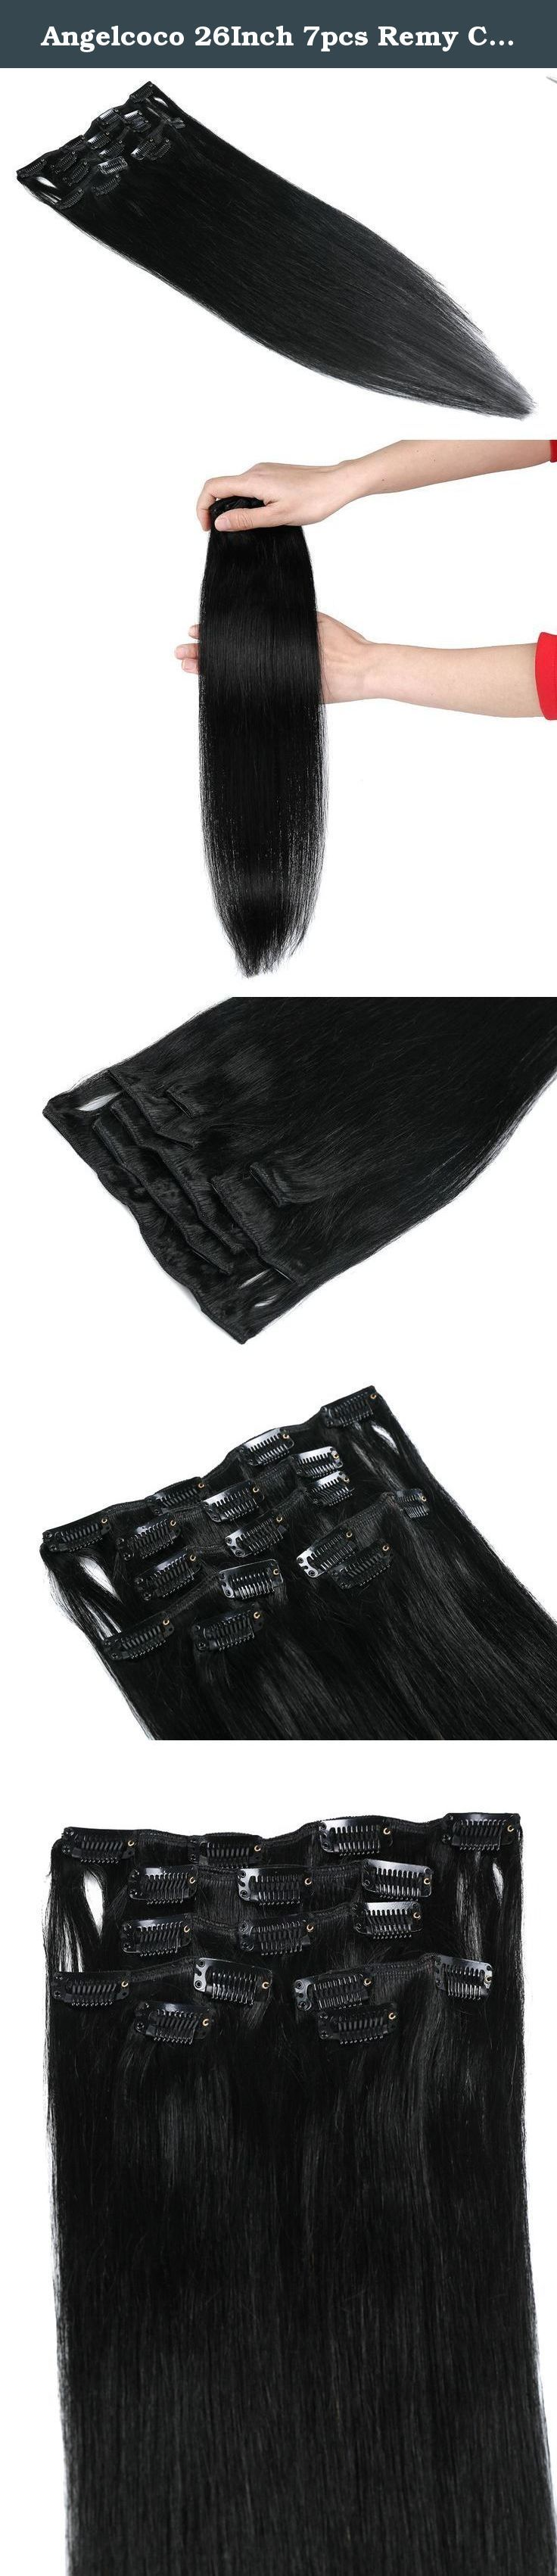 Angelcoco 26Inch 7pcs Remy Clips In Human Hair Extensions 120g With Clips For Highlight Or Full Head (26inch 7pcs, #1 Jet Black). How to attach and remove How to attach: 1. Open the clip on your hair extensions by holding the top section and gently pulling backwards by placing finger on each end of the clip. 2. Locate the area where you want to insert. Using a brush or comb or your fingers, part your hair and lift the section up and pin or clip it out of the way. Slide the clip into place…